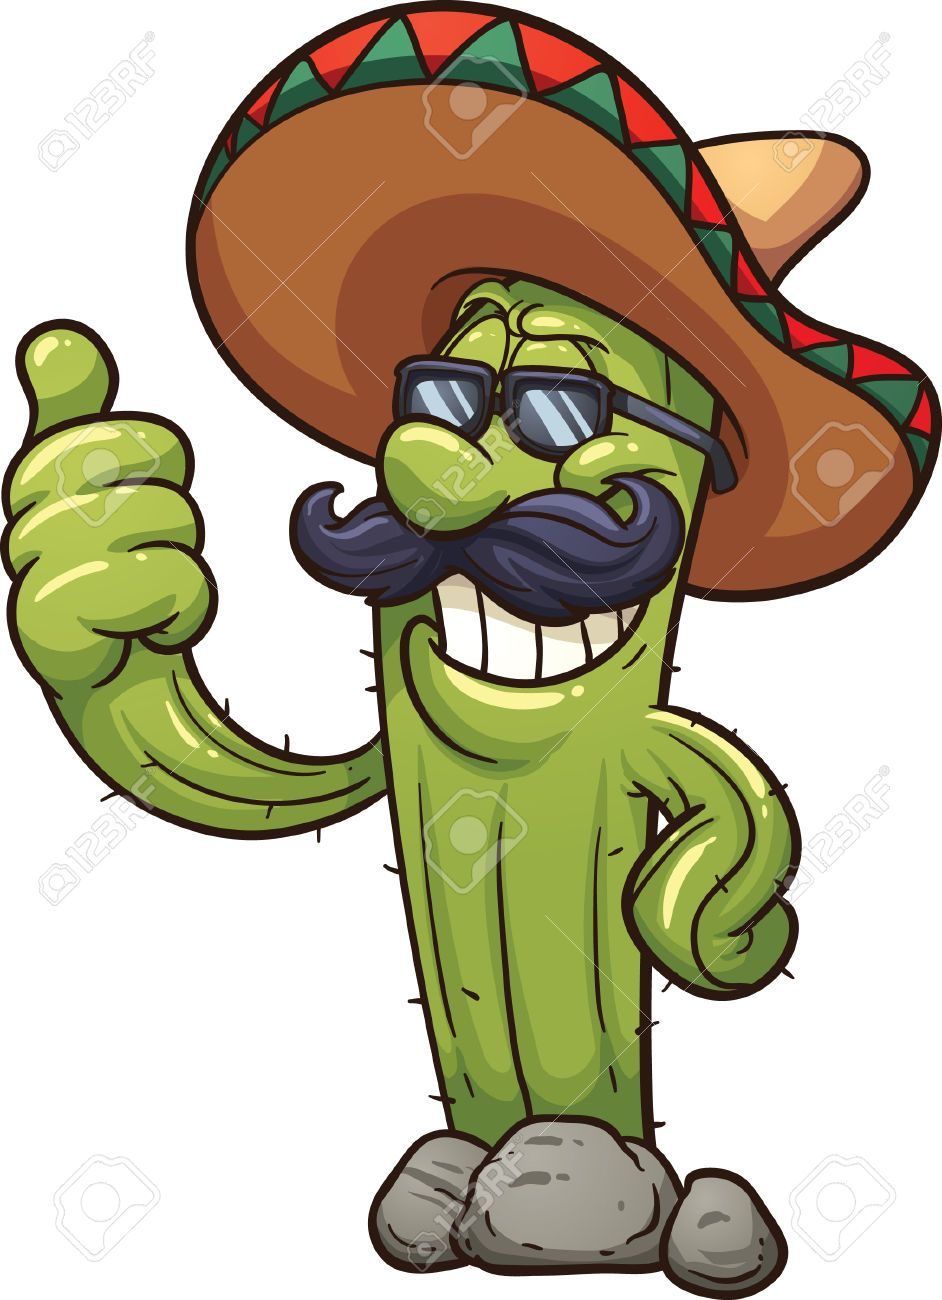 Cactus clipart animated. Mexican cartoon images stock